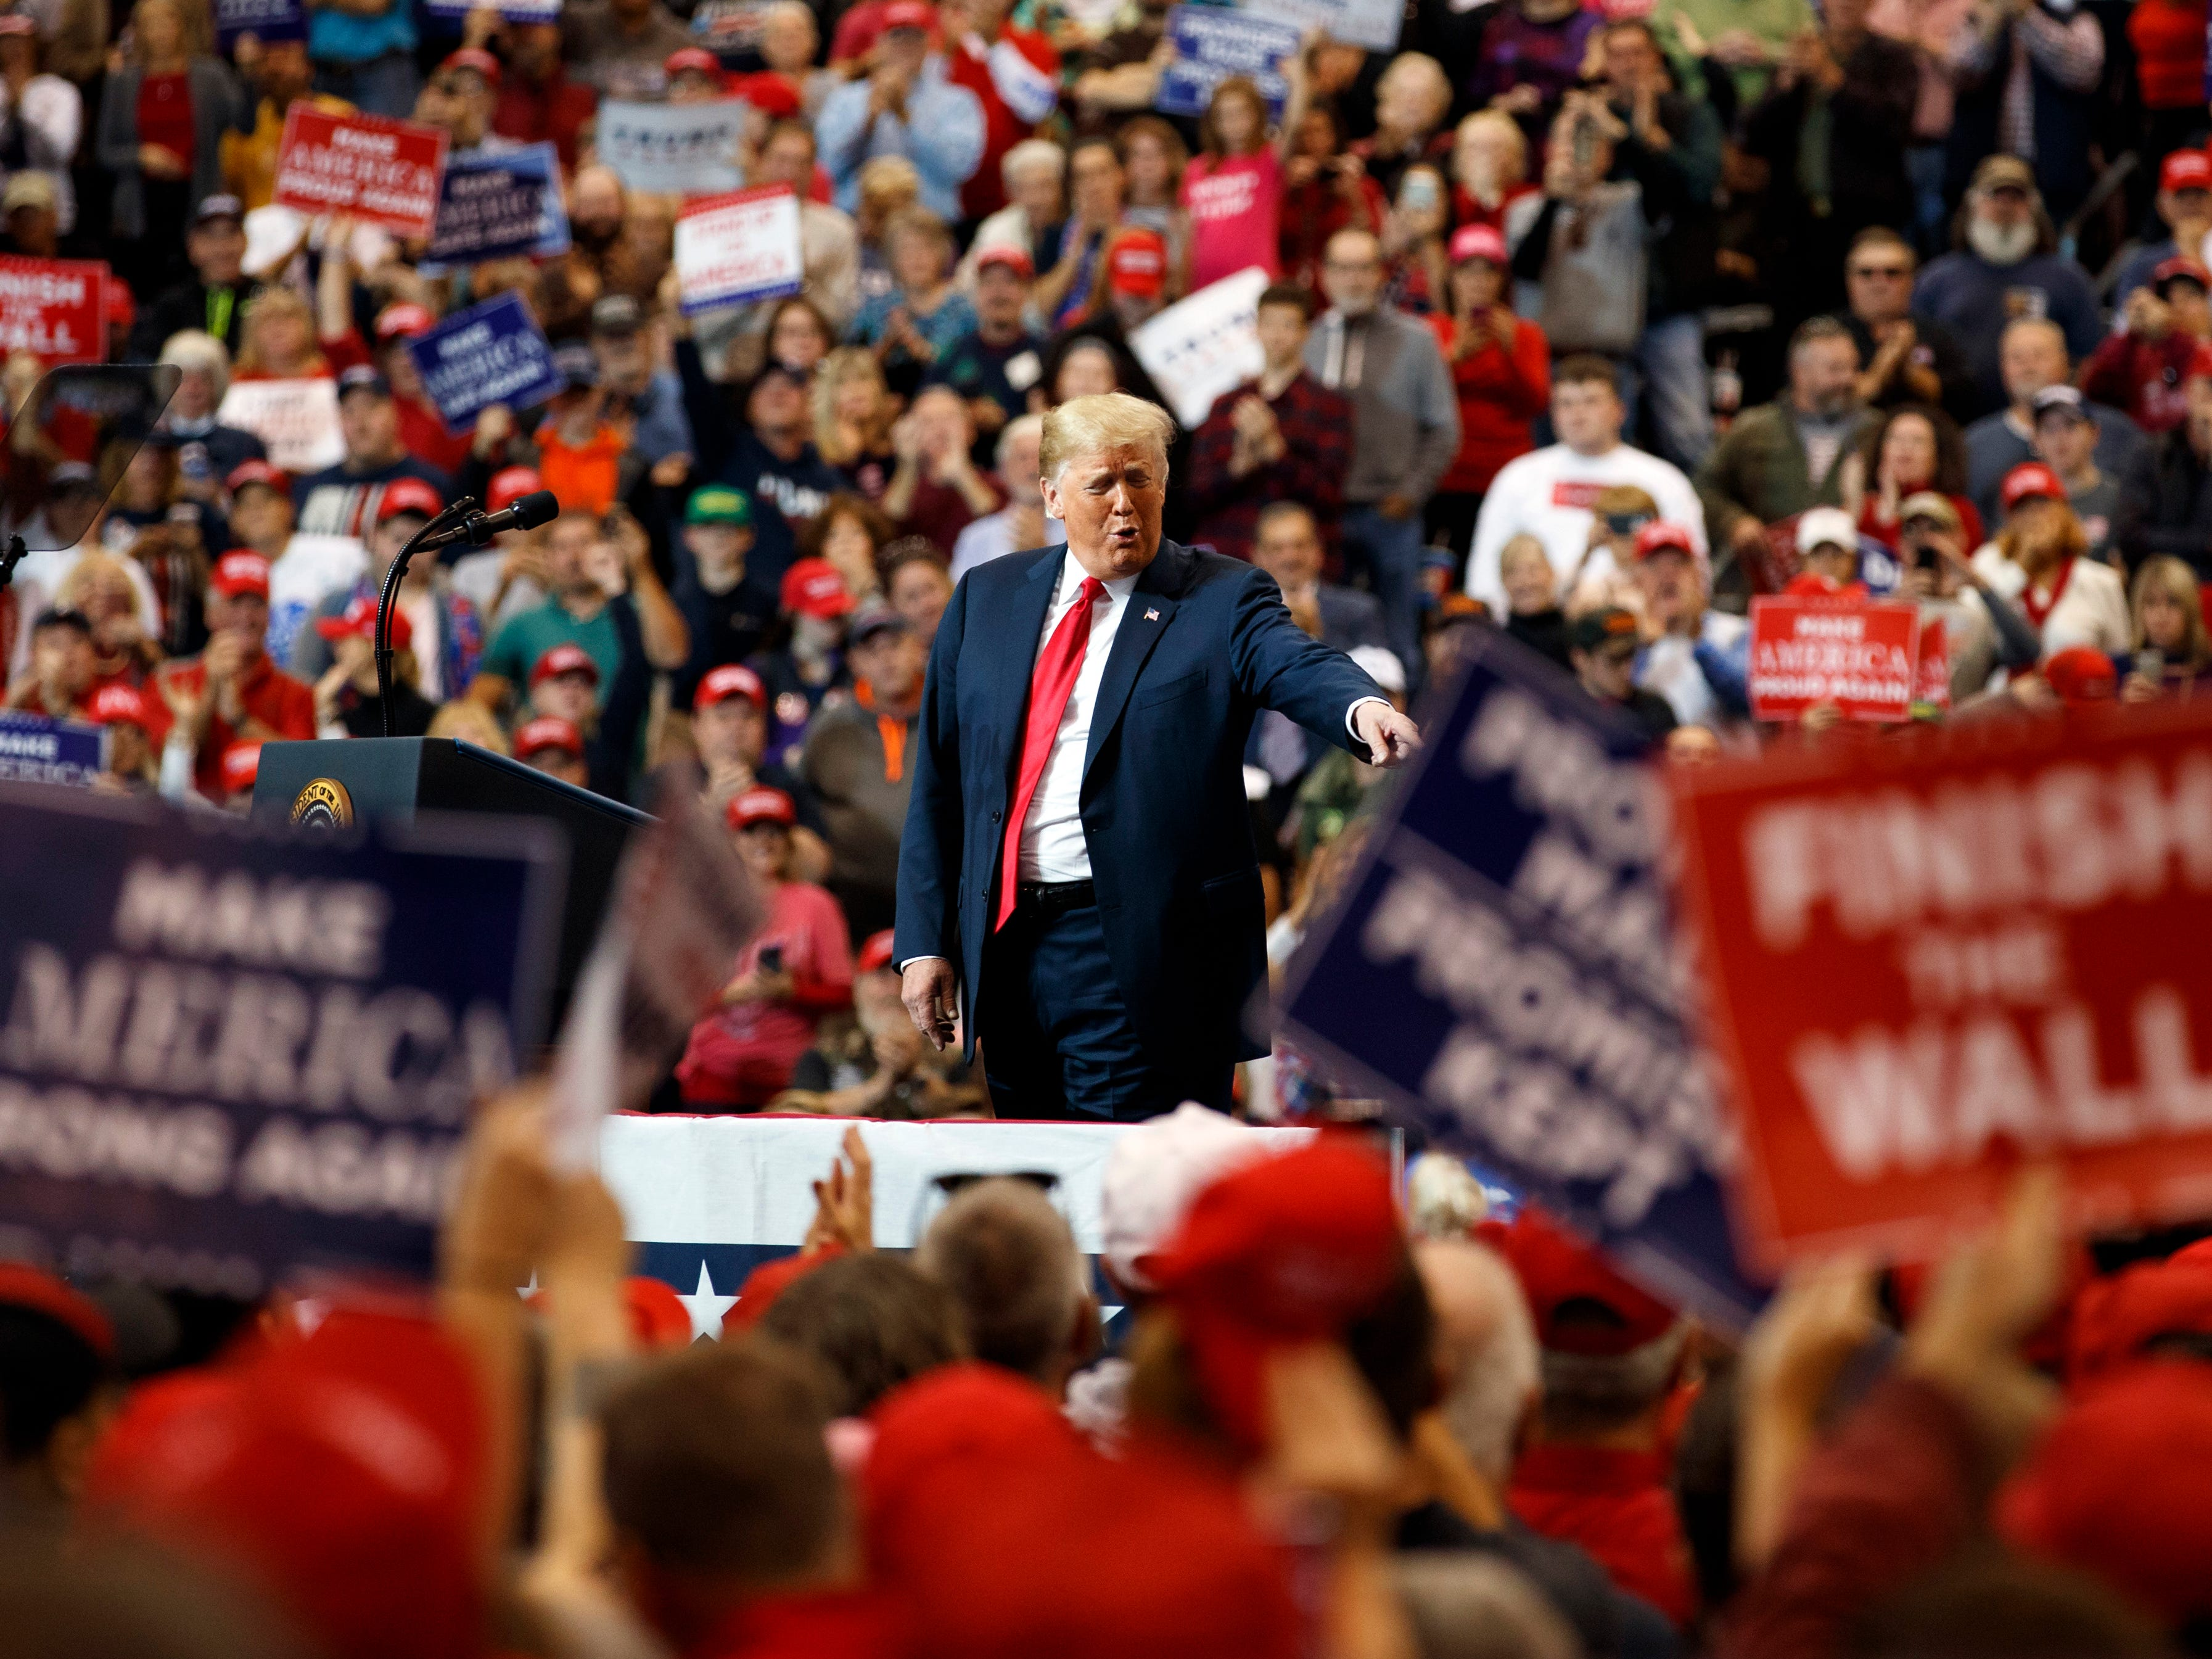 President Donald Trump arrives to speak at a campaign rally at the IX Center, in Cleveland, Monday, Nov. 5, 2018.